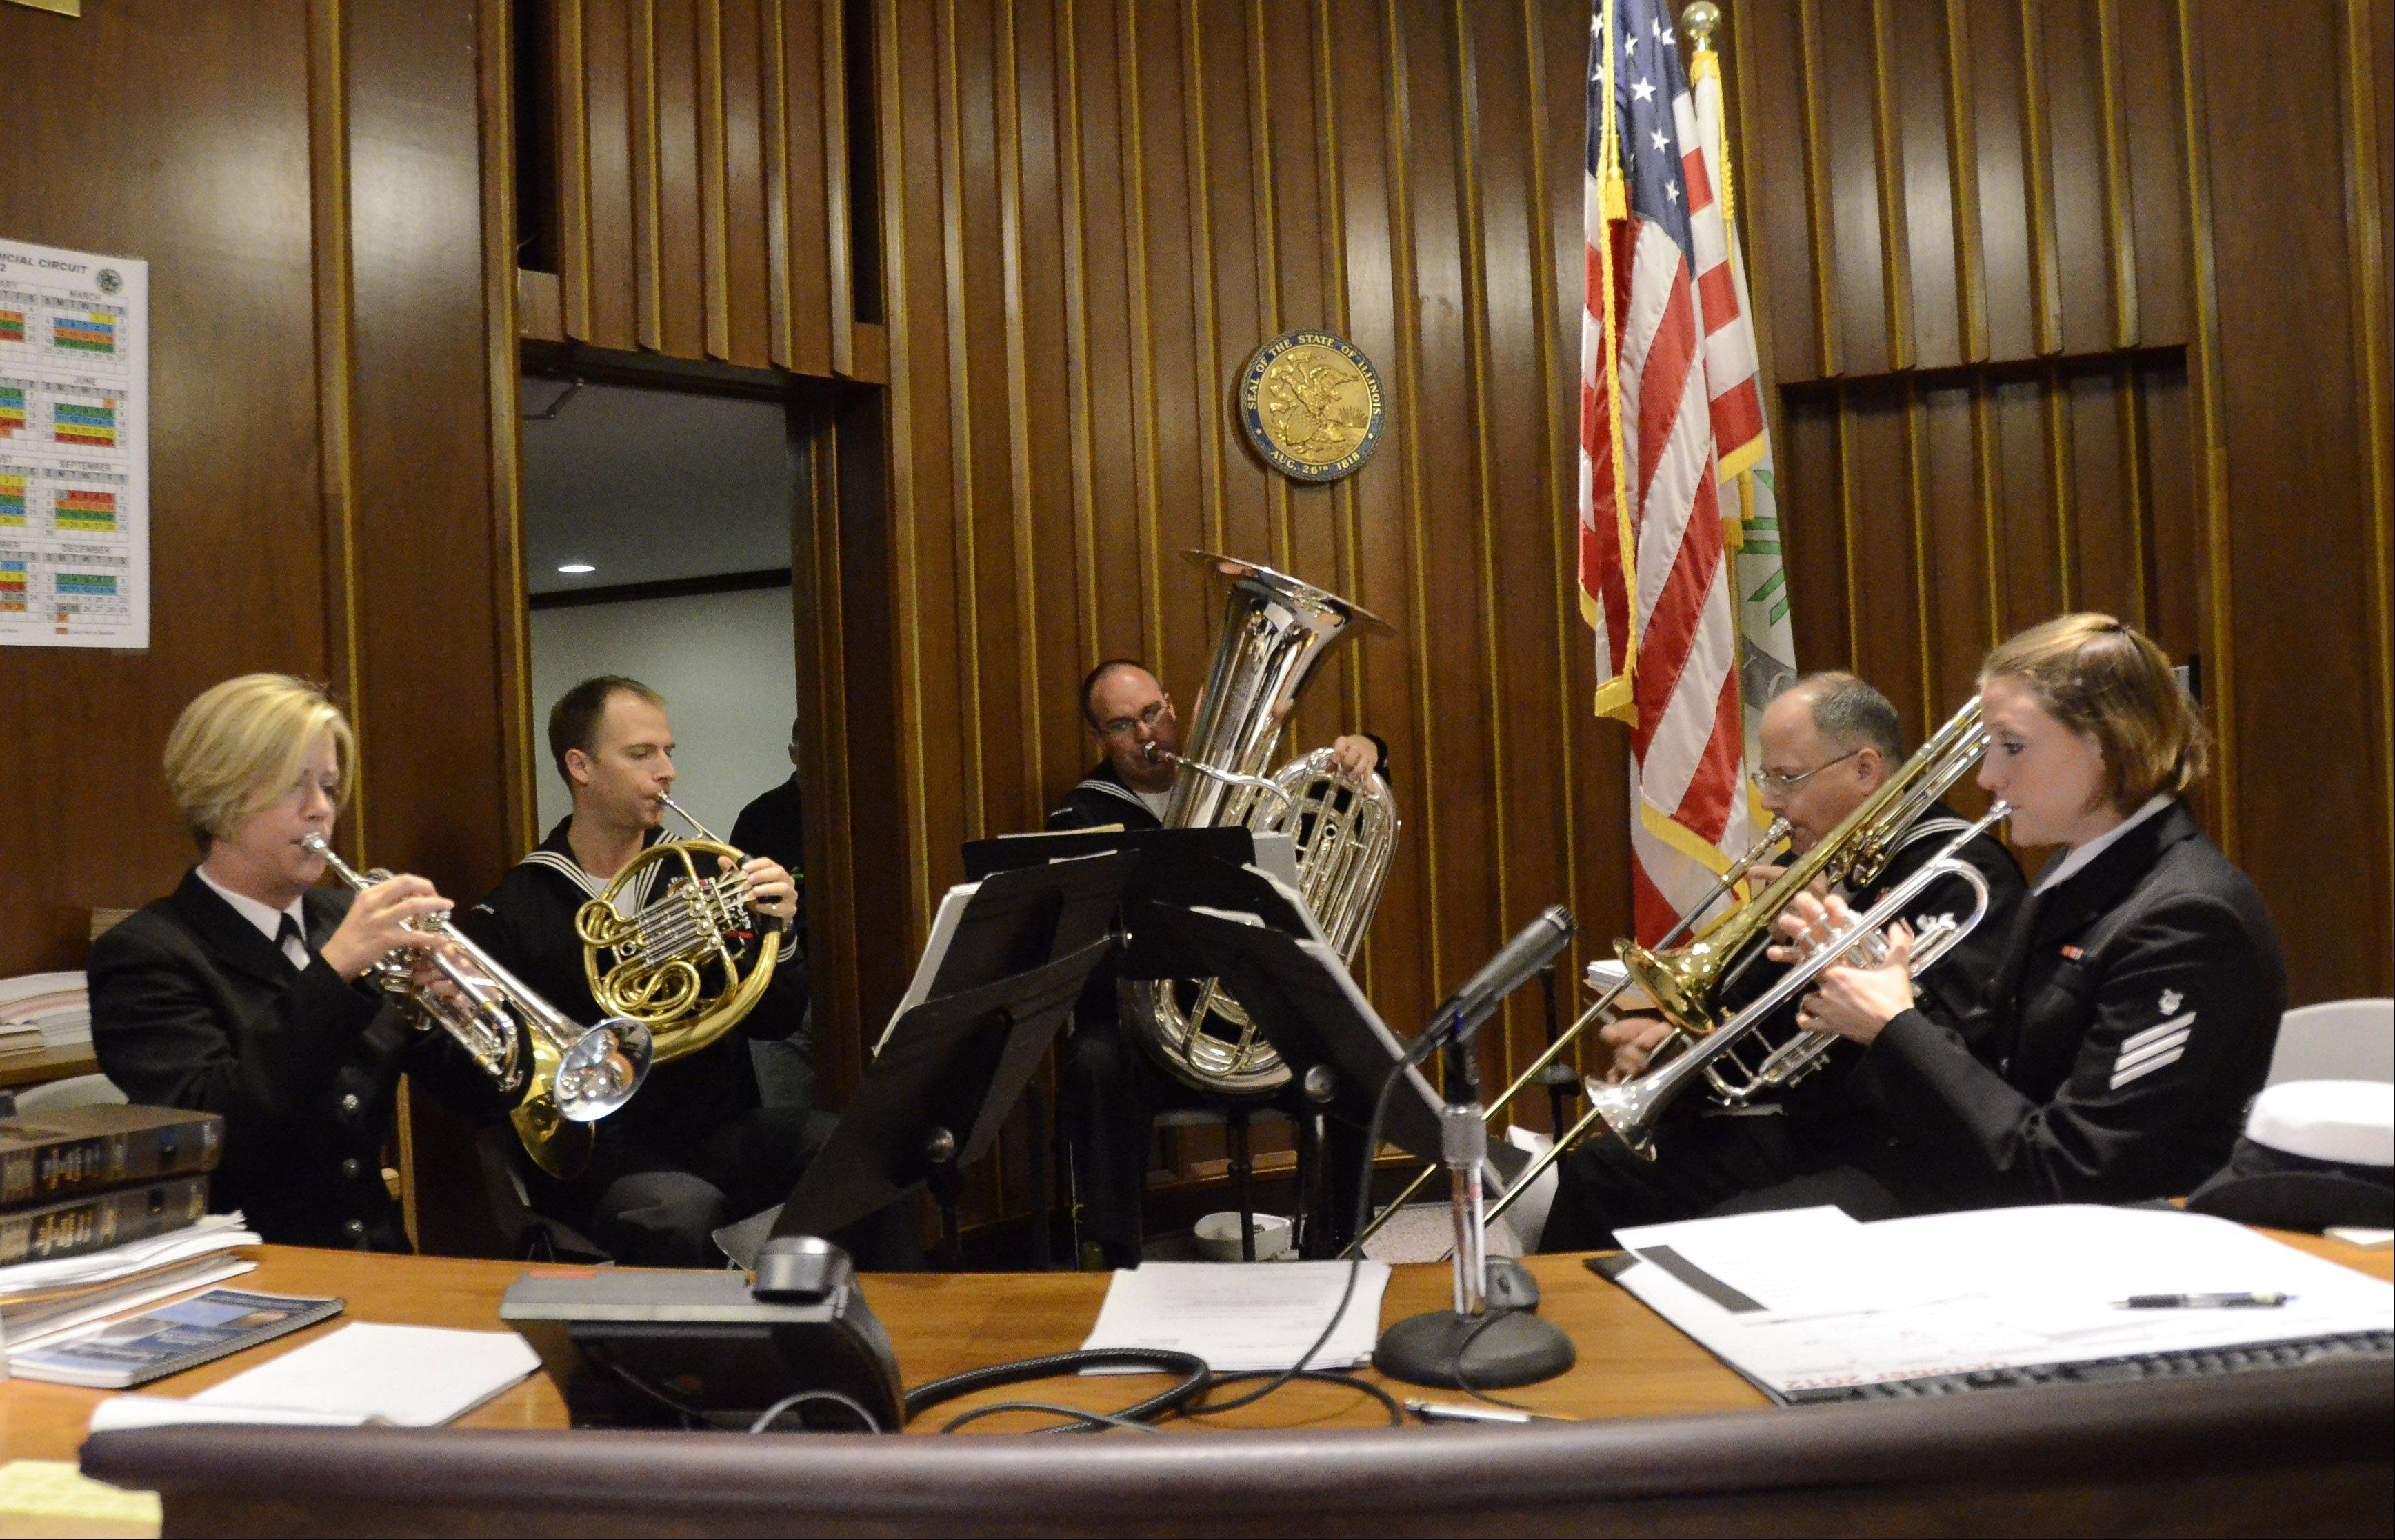 The Navy Band plays for members of the legal community and combat war veterans at the Lake County Courthouse last year during the recording of veterans' stories for the Library of Congress.